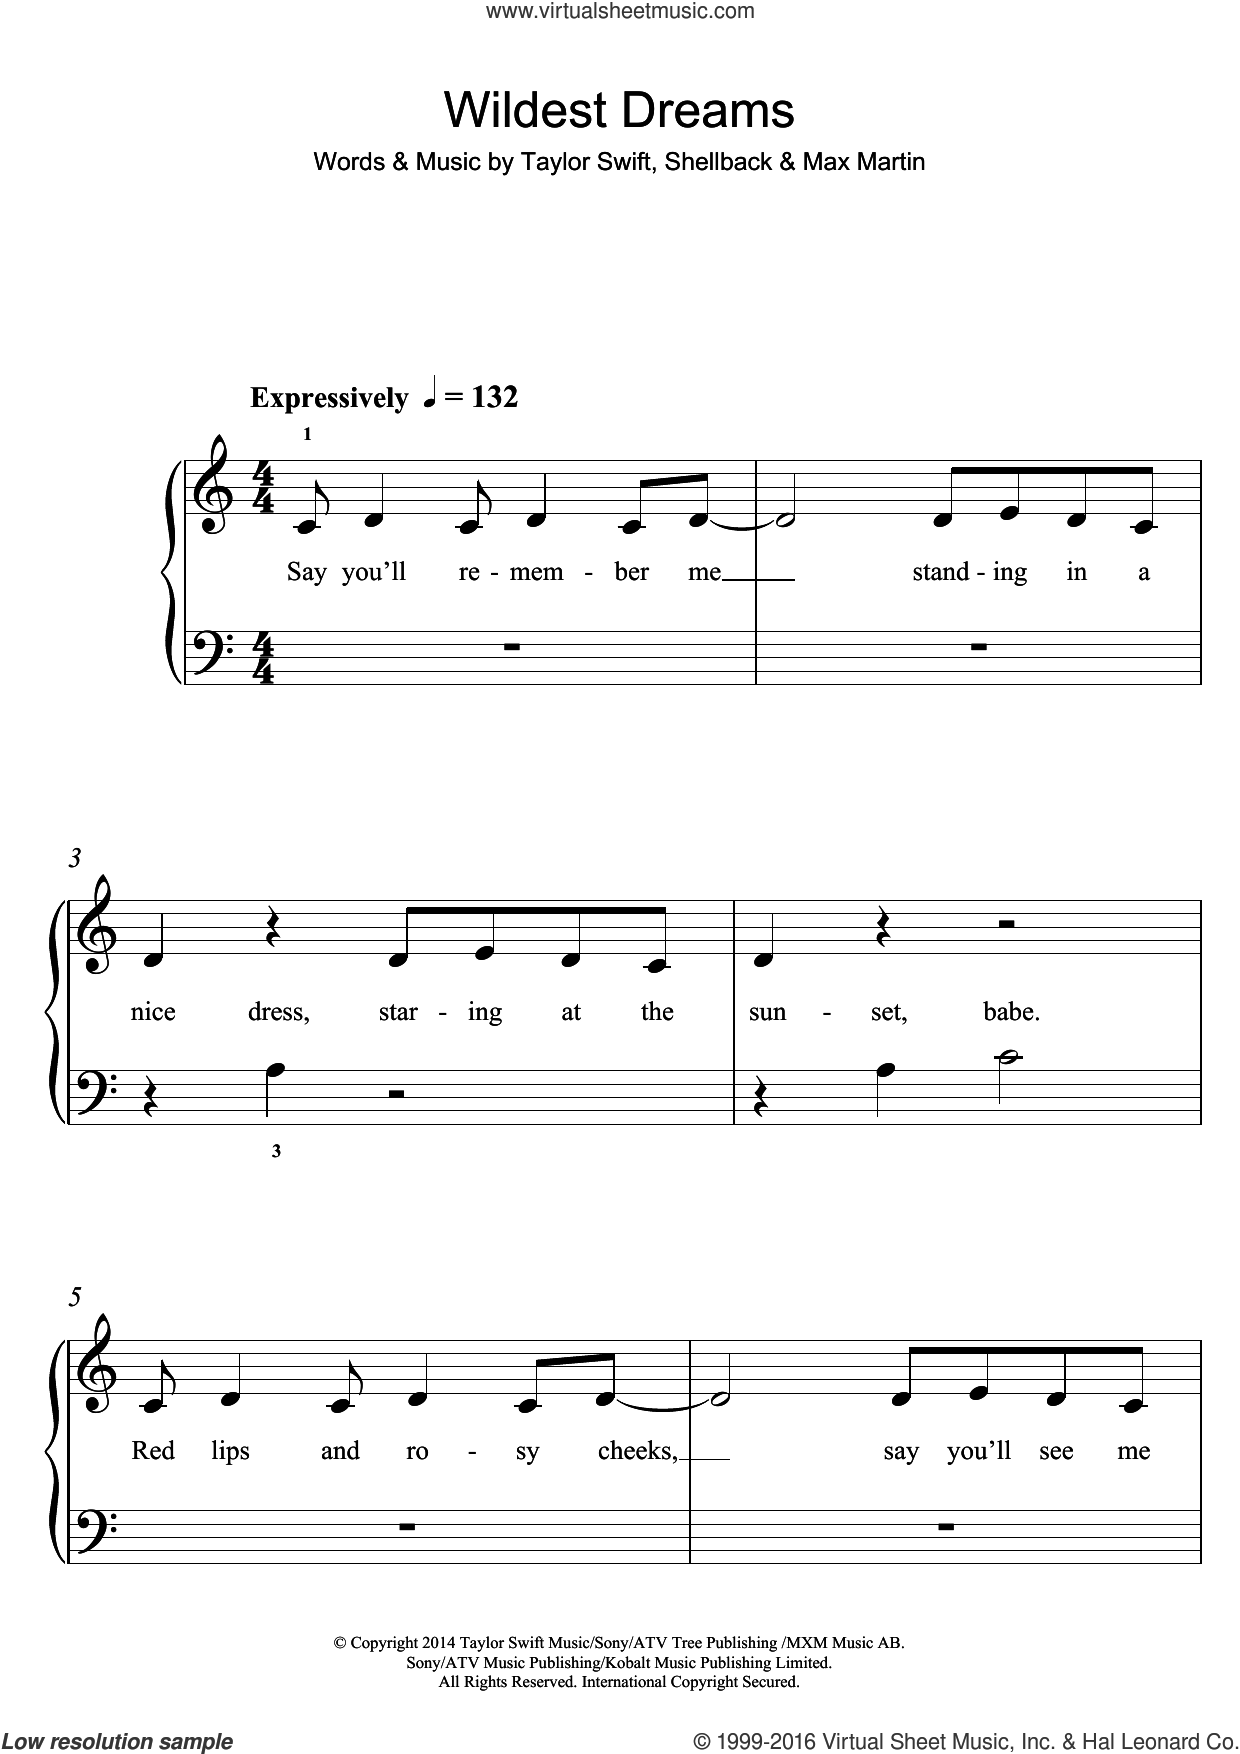 Wildest Dreams sheet music for piano solo (5-fingers) by Taylor Swift, Max Martin and Shellback, beginner piano (5-fingers)